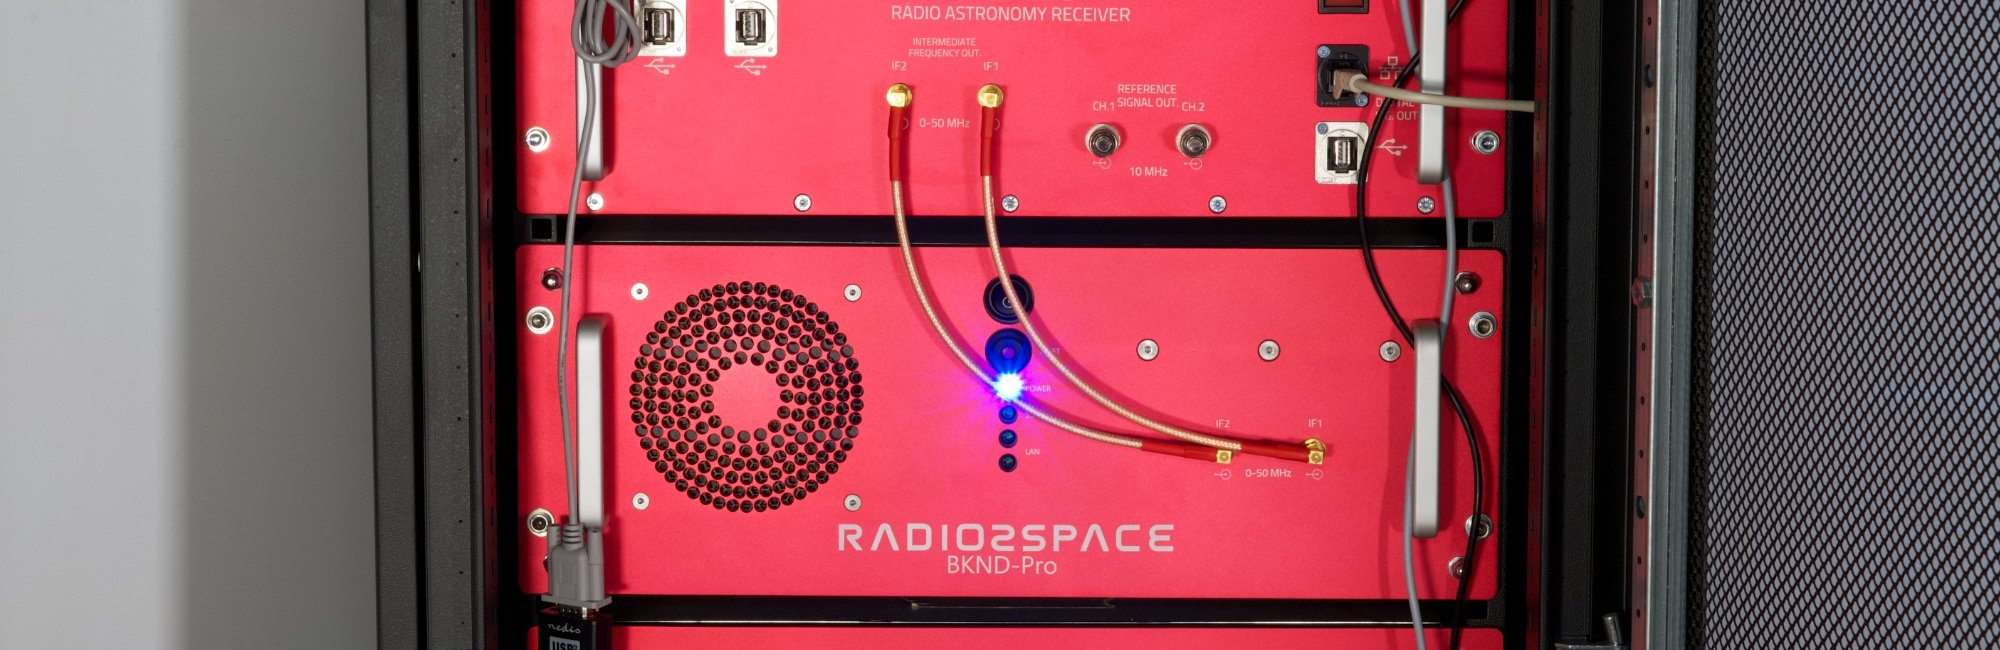 BKND-Pro backend for radio astronomy and SETI